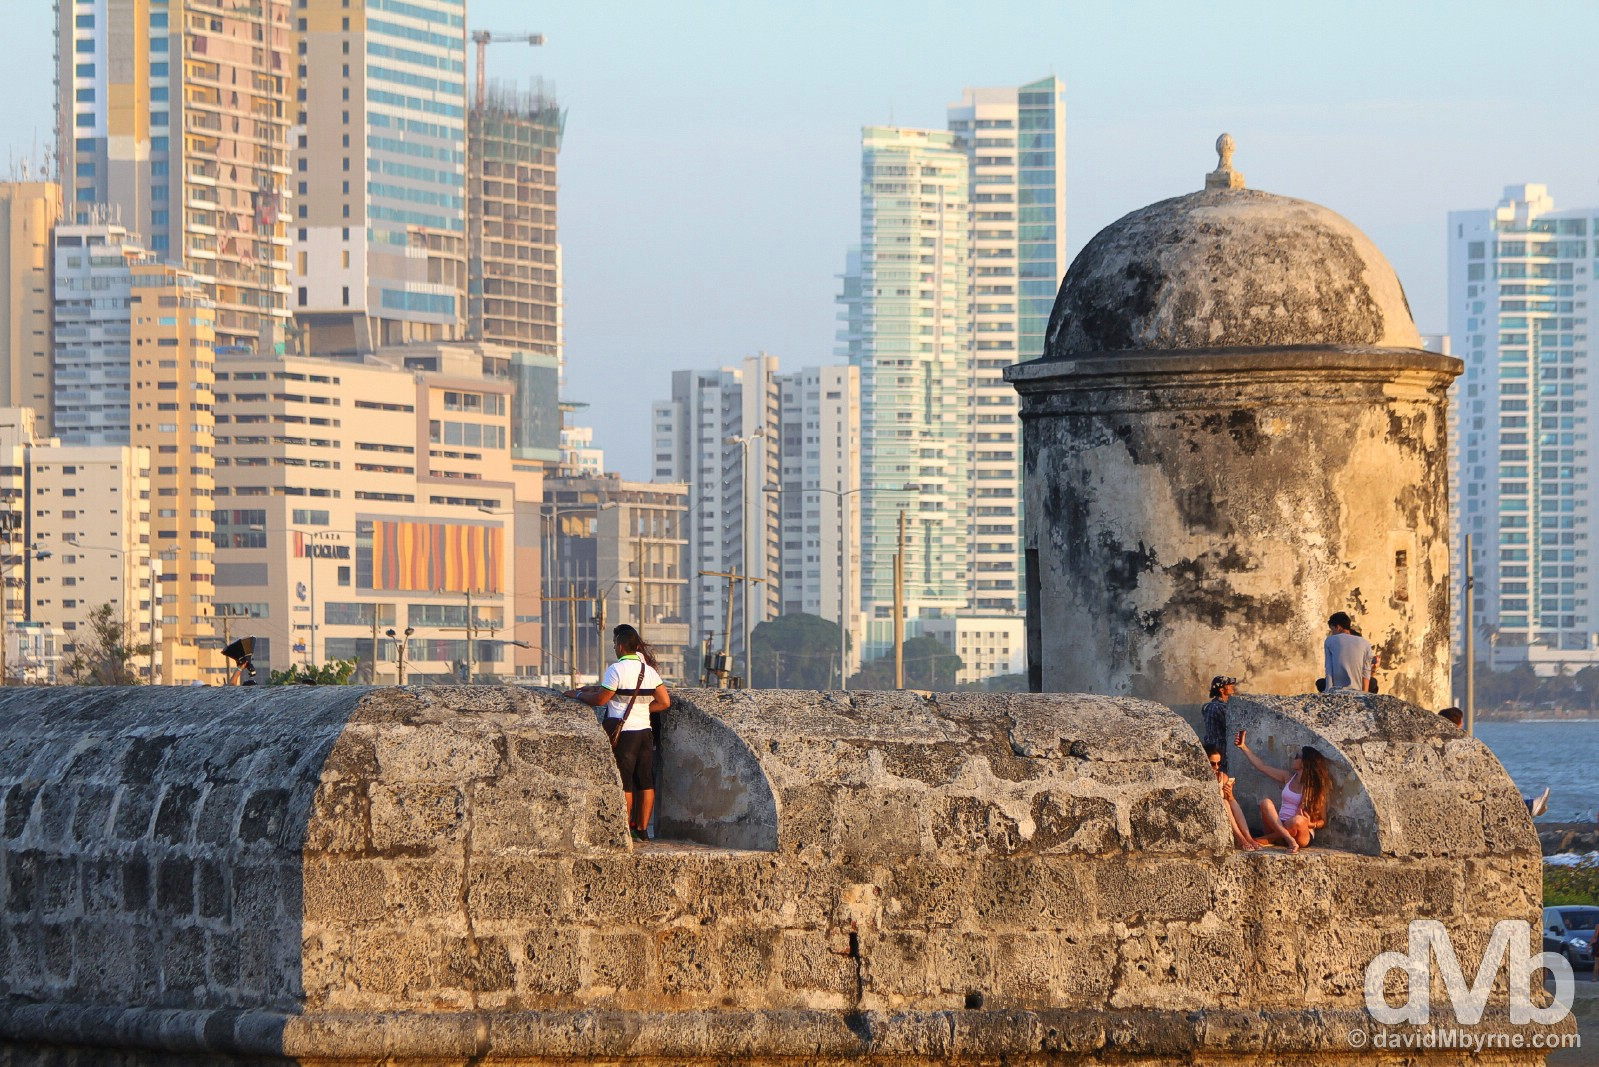 New & old. New Cartagena as seen from a section of Las Murallas, the Old Town walls. Cartagena, Colombia. June 24, 2015.